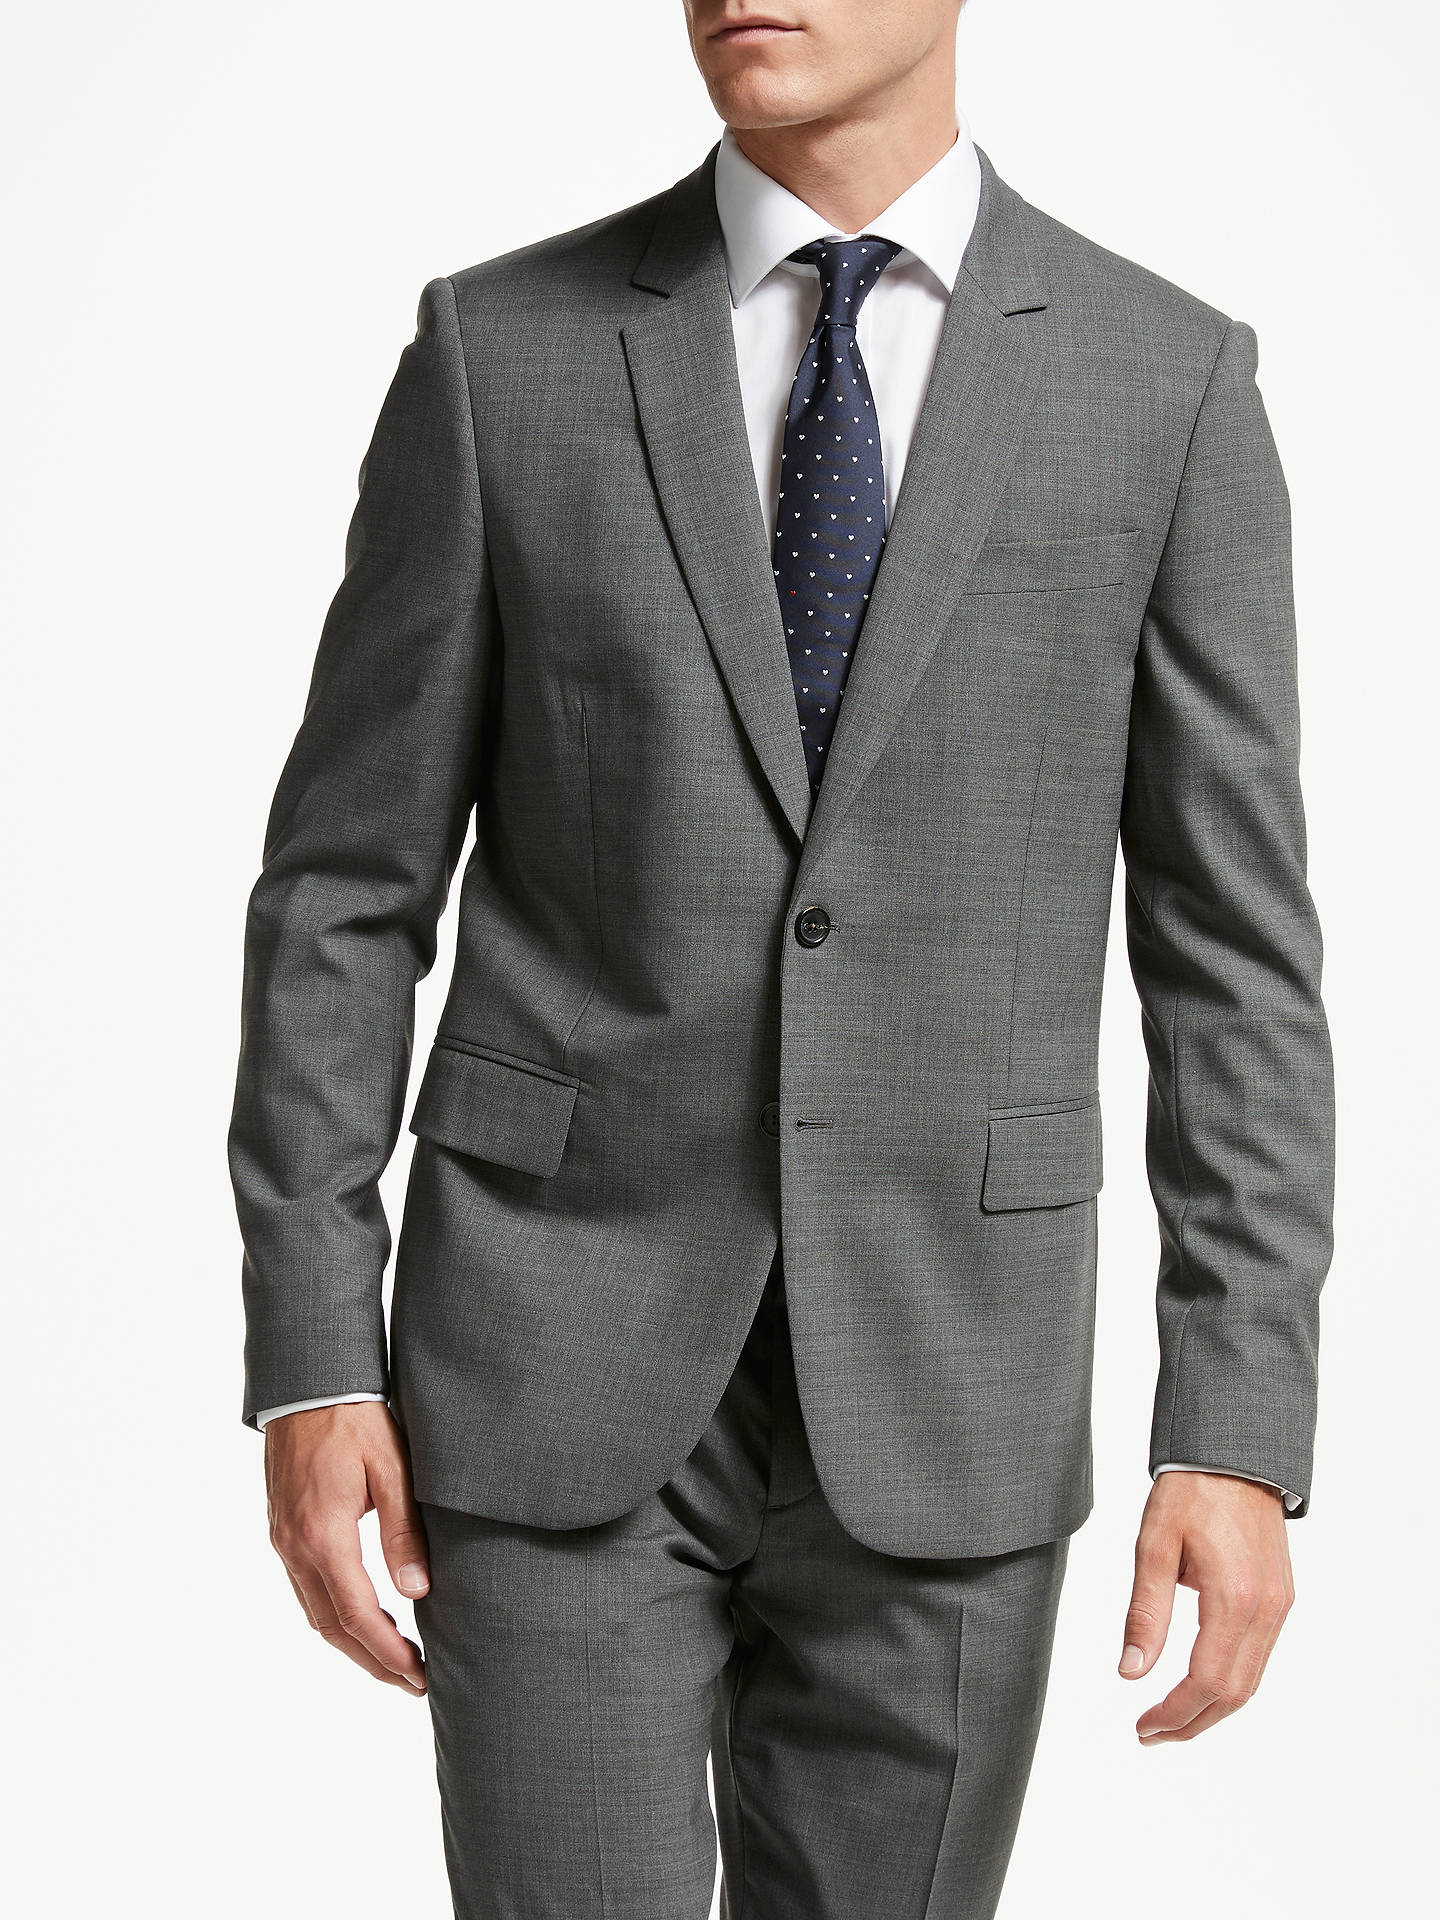 0159135ab37 Buy PS Paul Smith Tailored Fit Suit Jacket